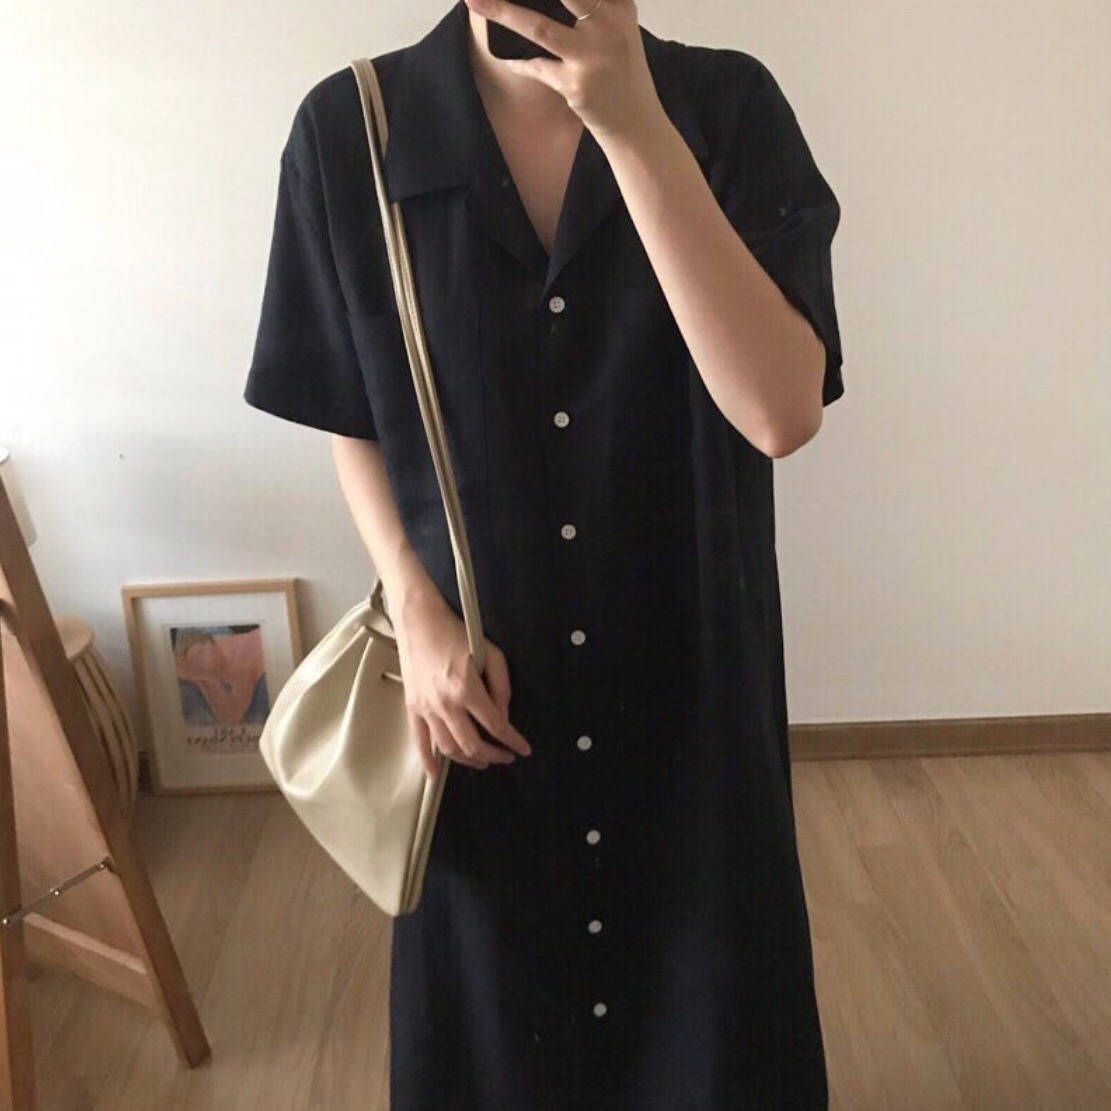 black v neck long sleeves casual sweaters with side pockets Women's V-neck short sleeves with buttons and pockets Pure color cotton and linen series casual loose long skirt